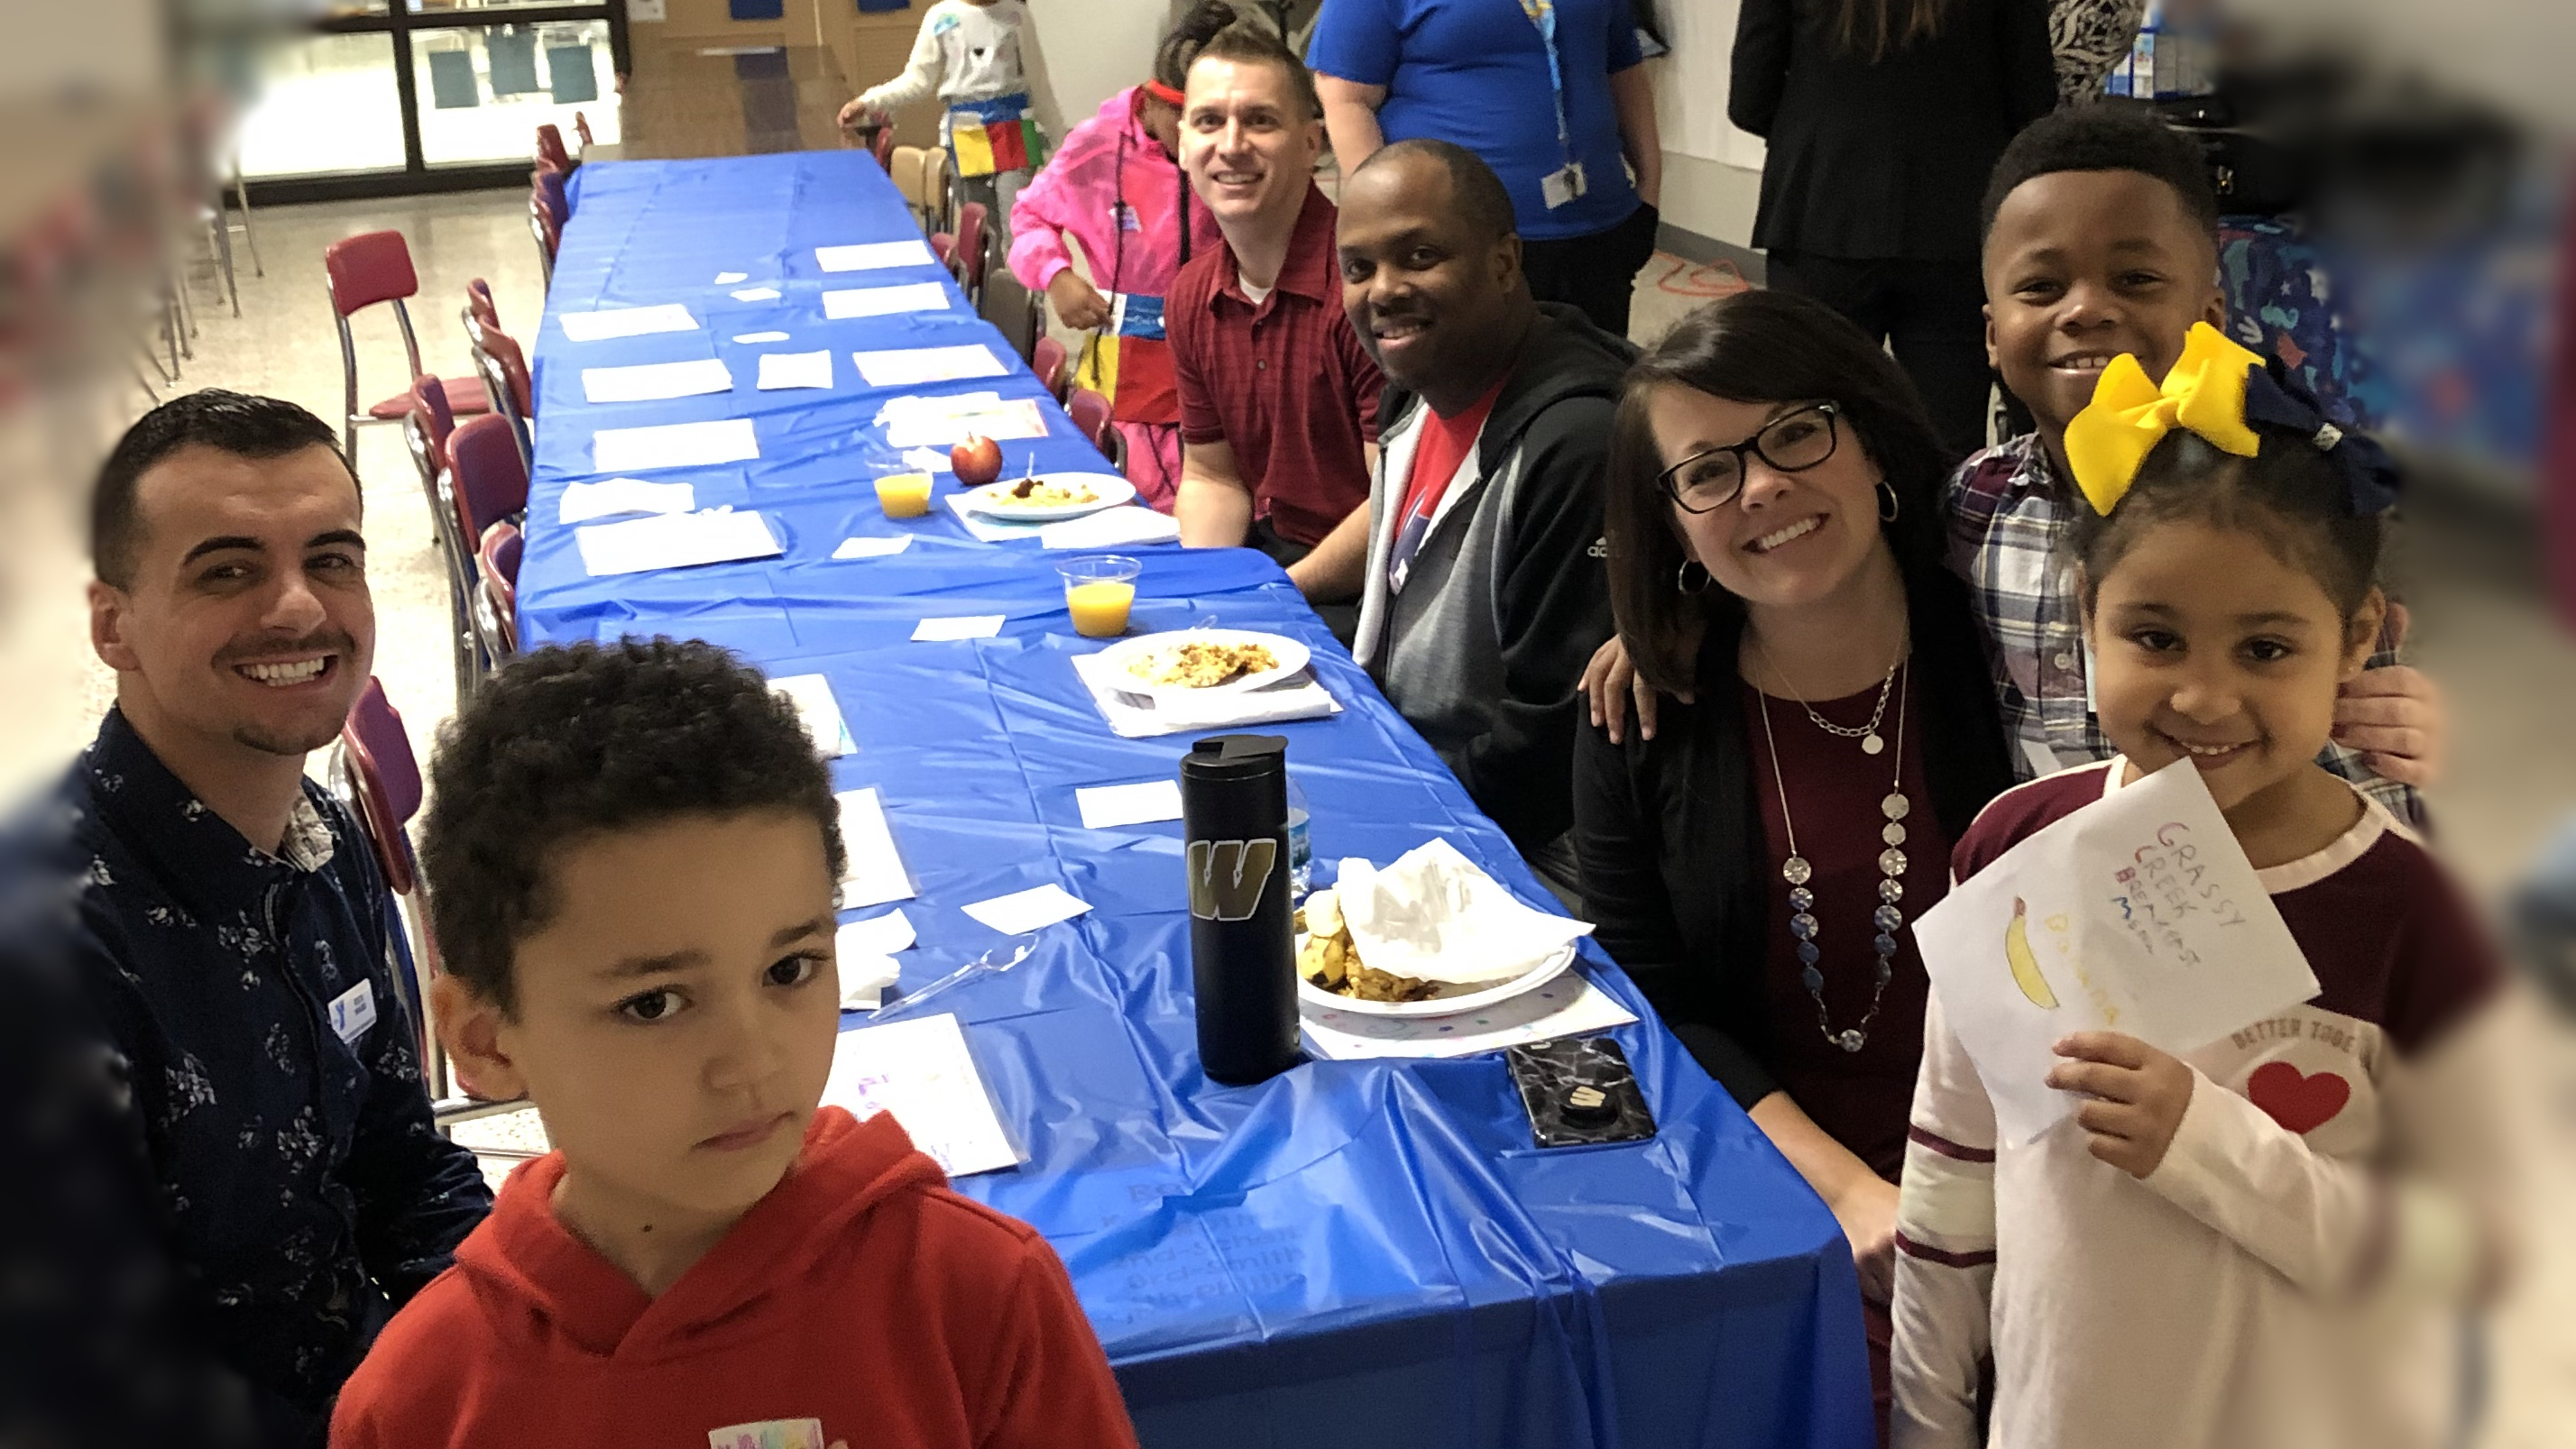 Grassy Creek Elementary School Principal Christy Merchant, students, and staff smile while sitting at a long blue table for breakfast.